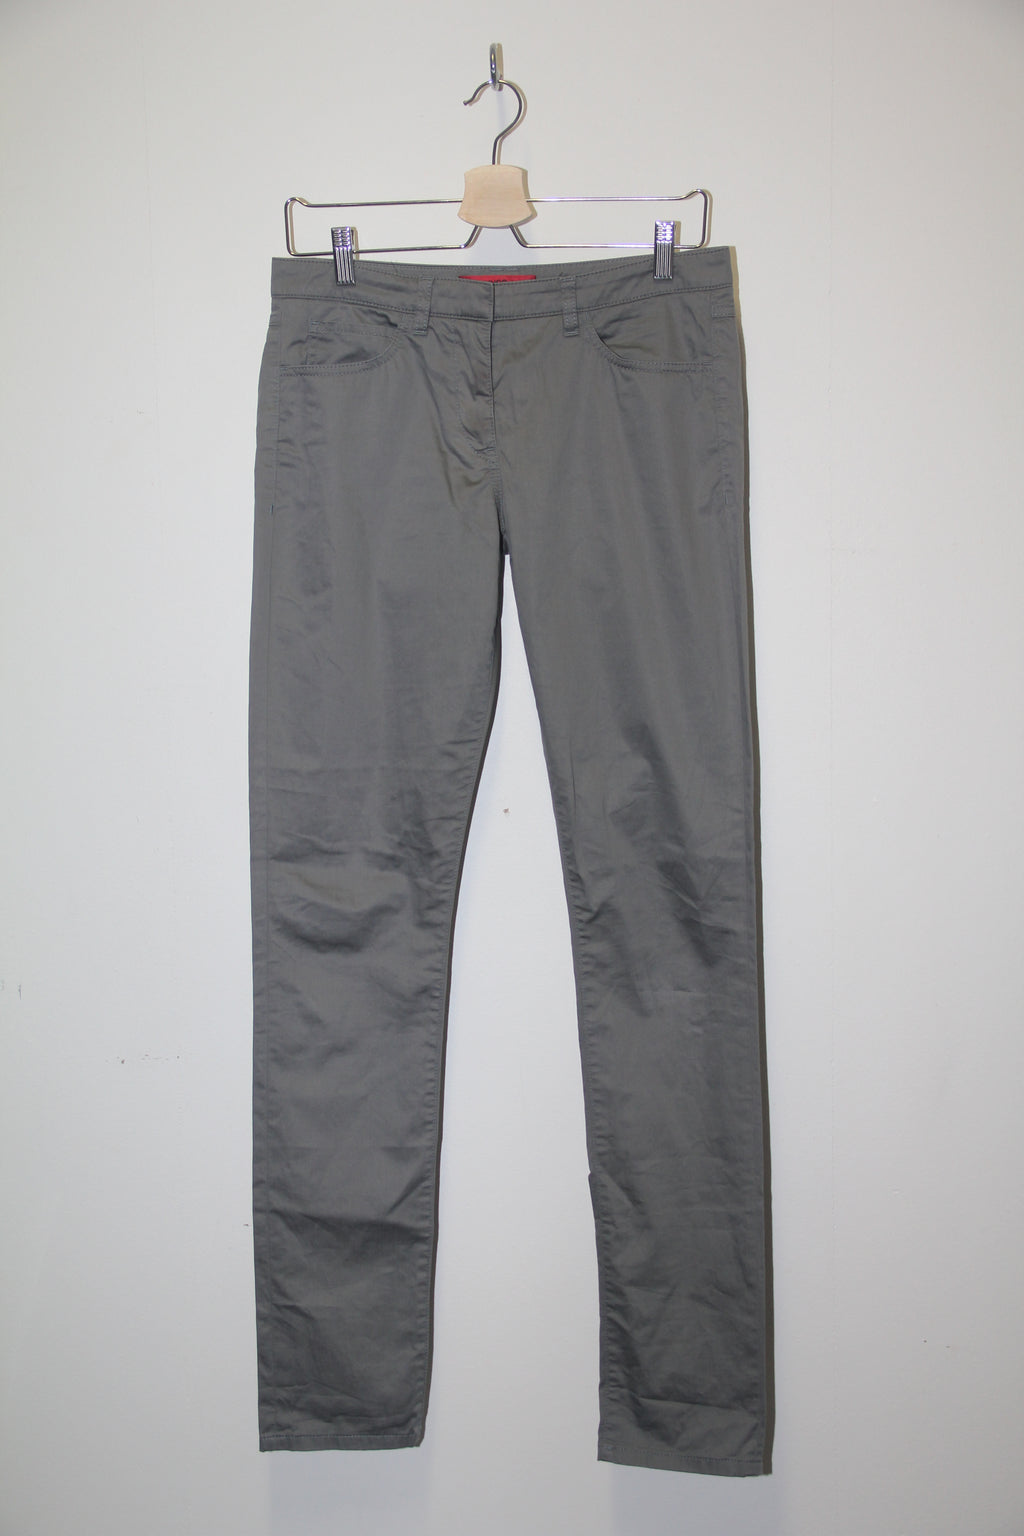 Hugo Boss Gráar Chinos // 26/27/S